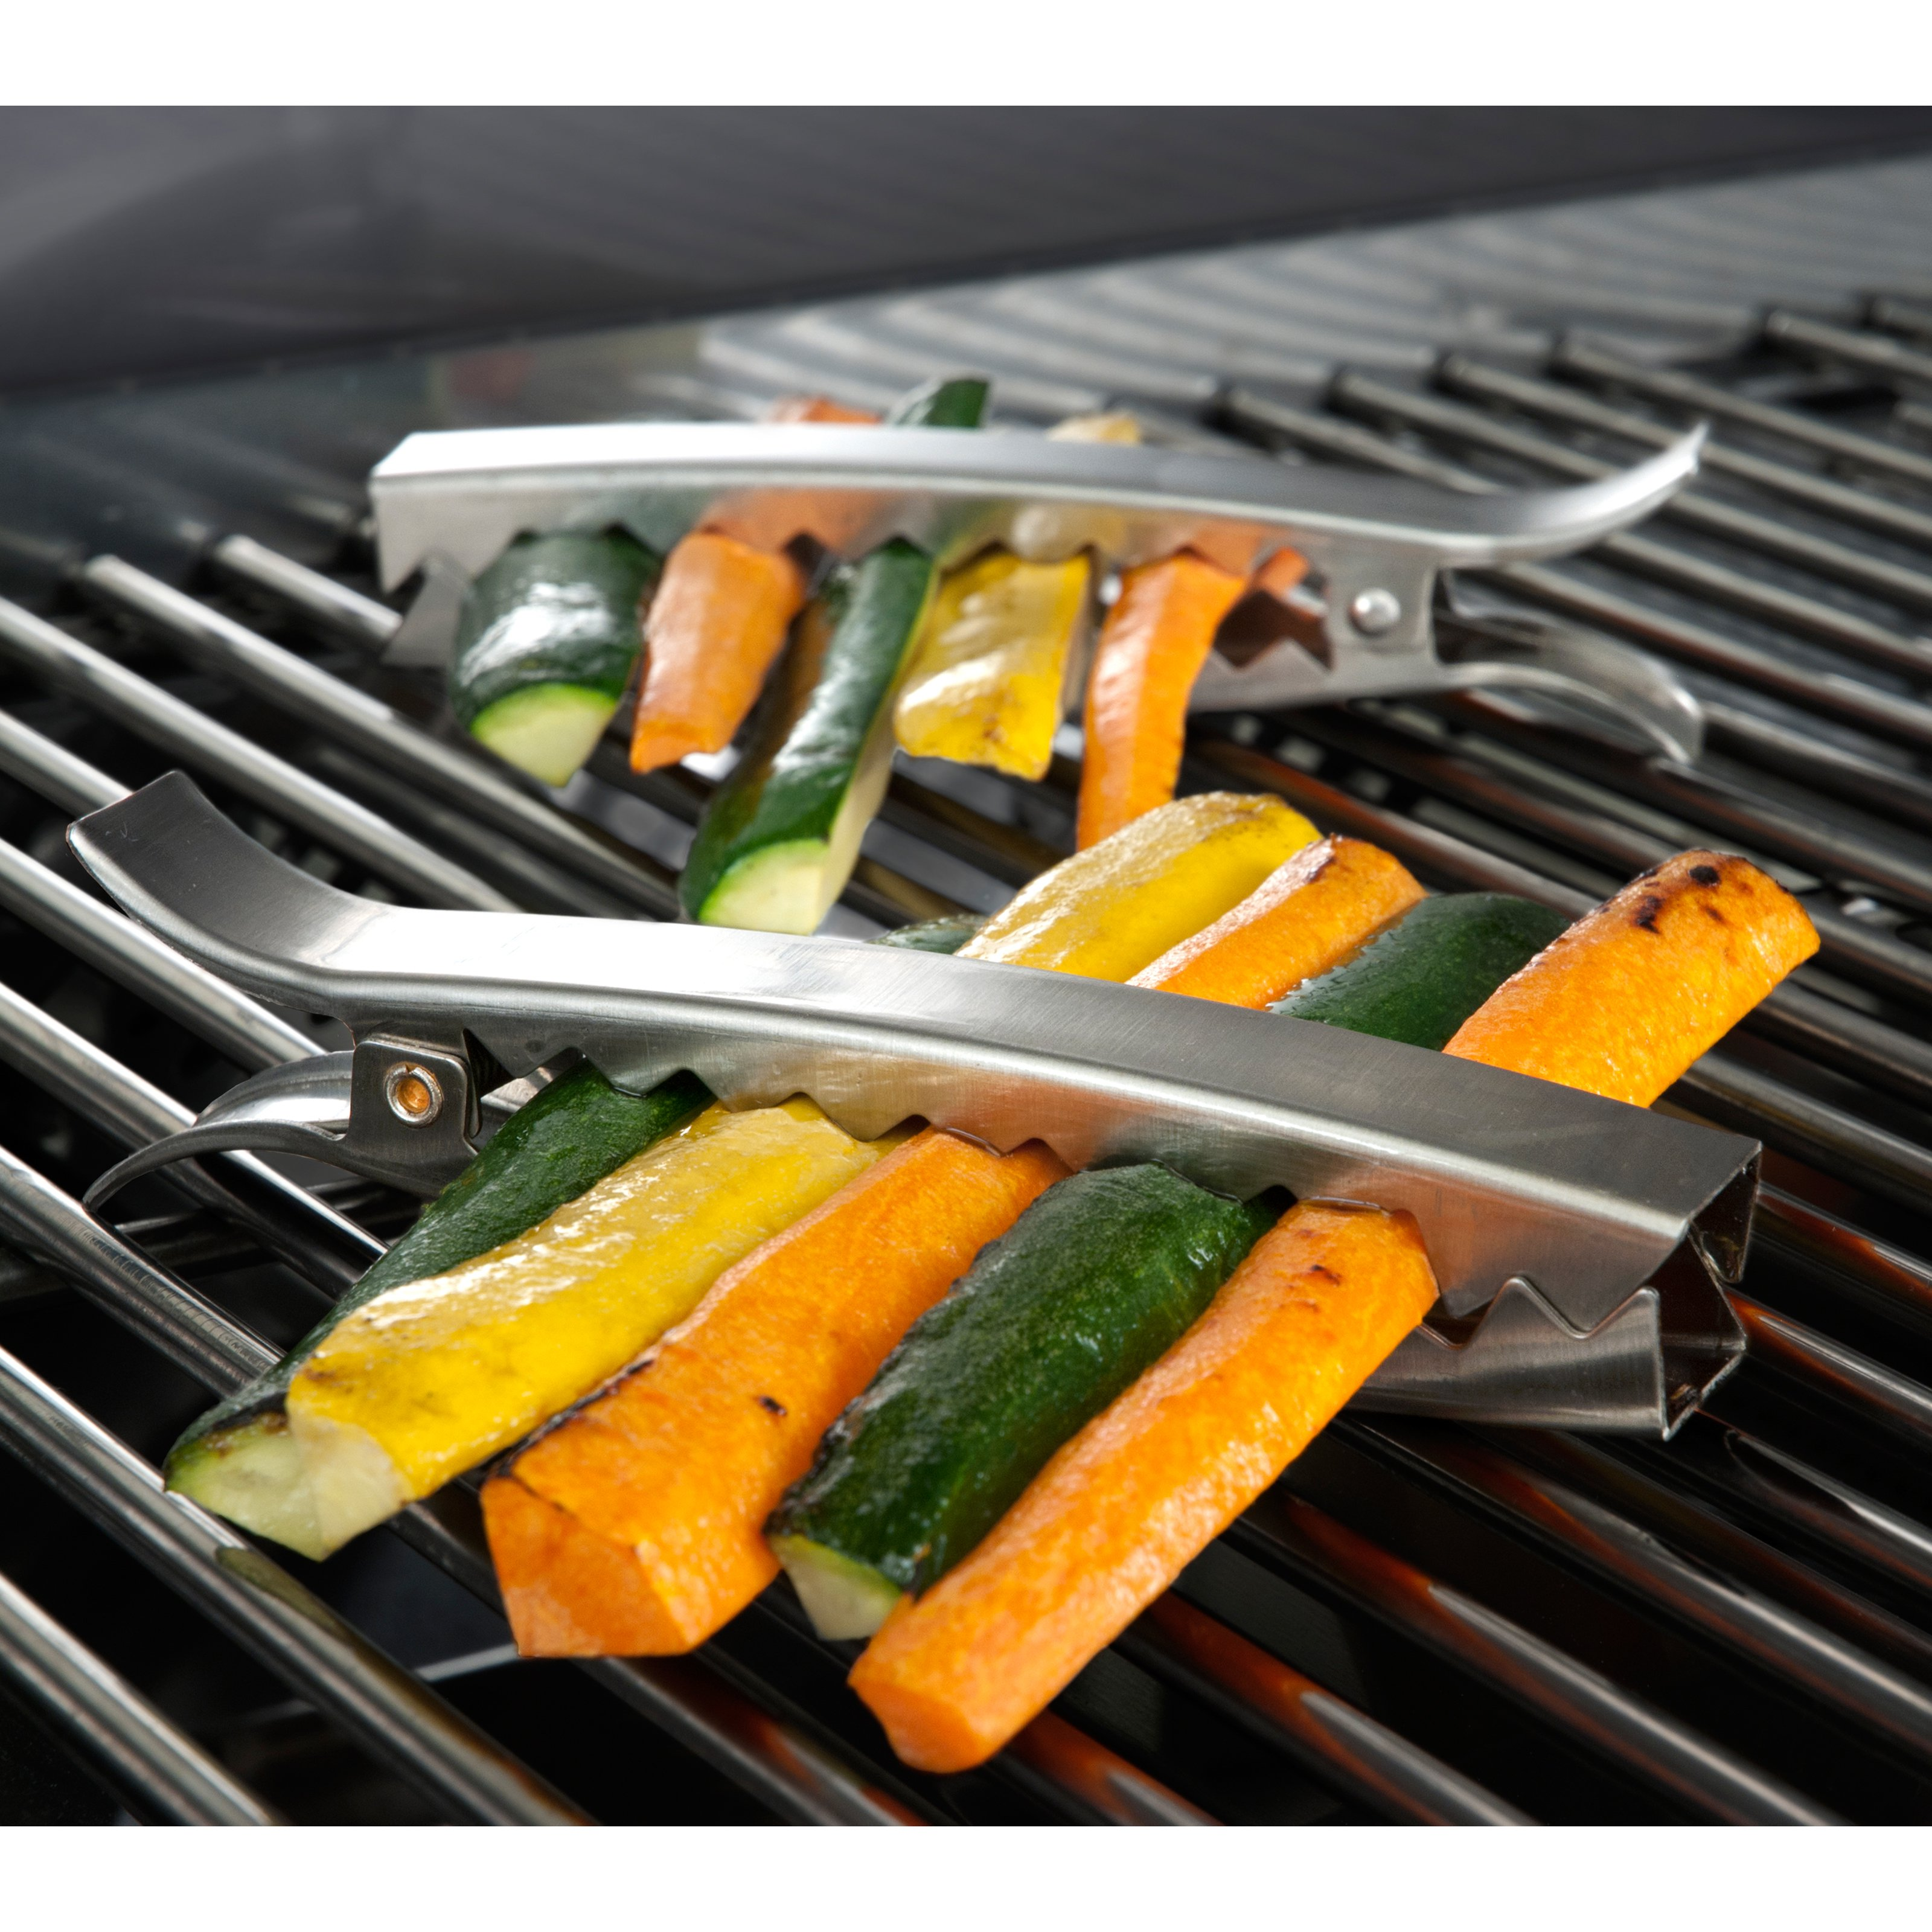 Charcoal Companion Stainless Grill Clips Set 4 by Charcoal Companion